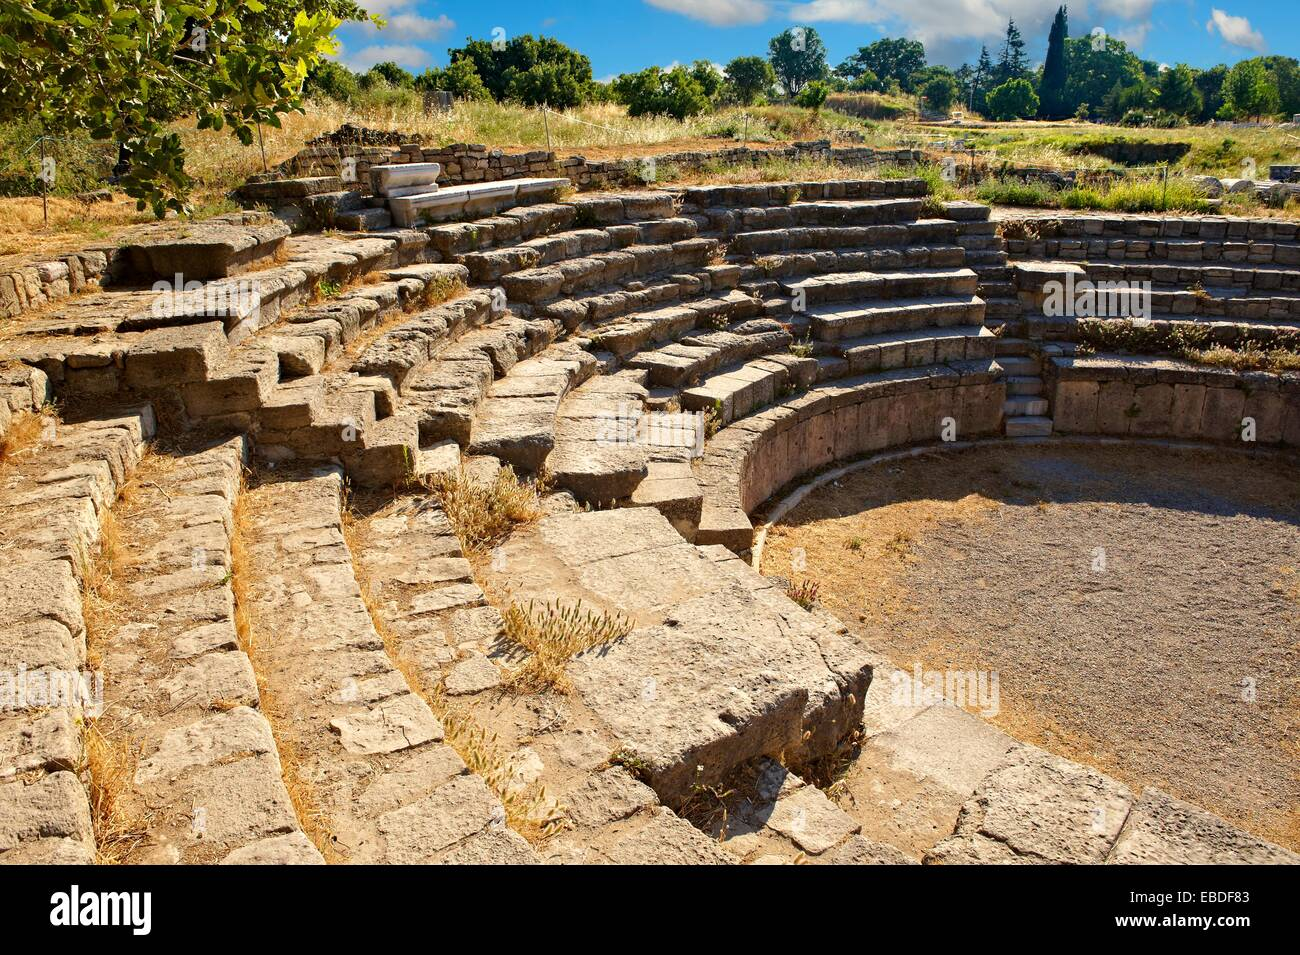 Roman Amphitheatre of Troy  Troy archaeological site, A UNESCO World Heritage Site, Turkey - Stock Image